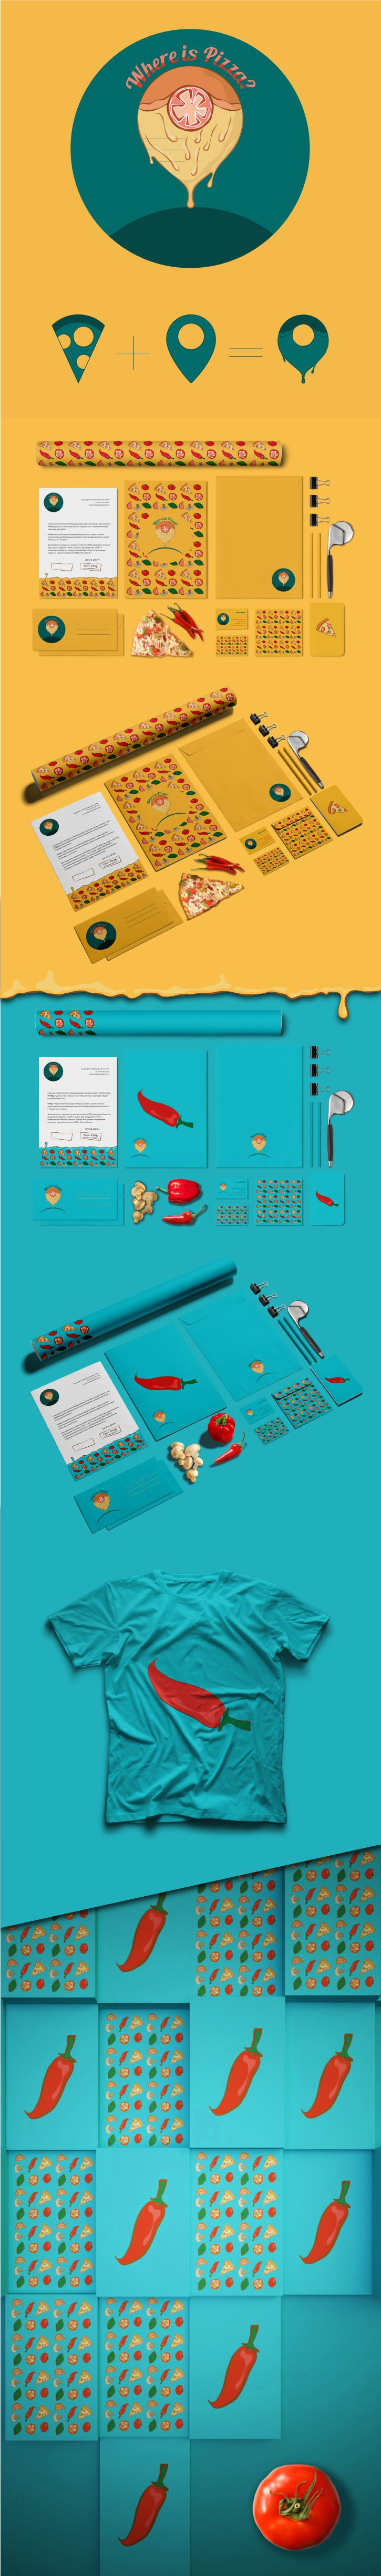 27 best pizza images on Pinterest | Pizza logo, Pizza branding and ...